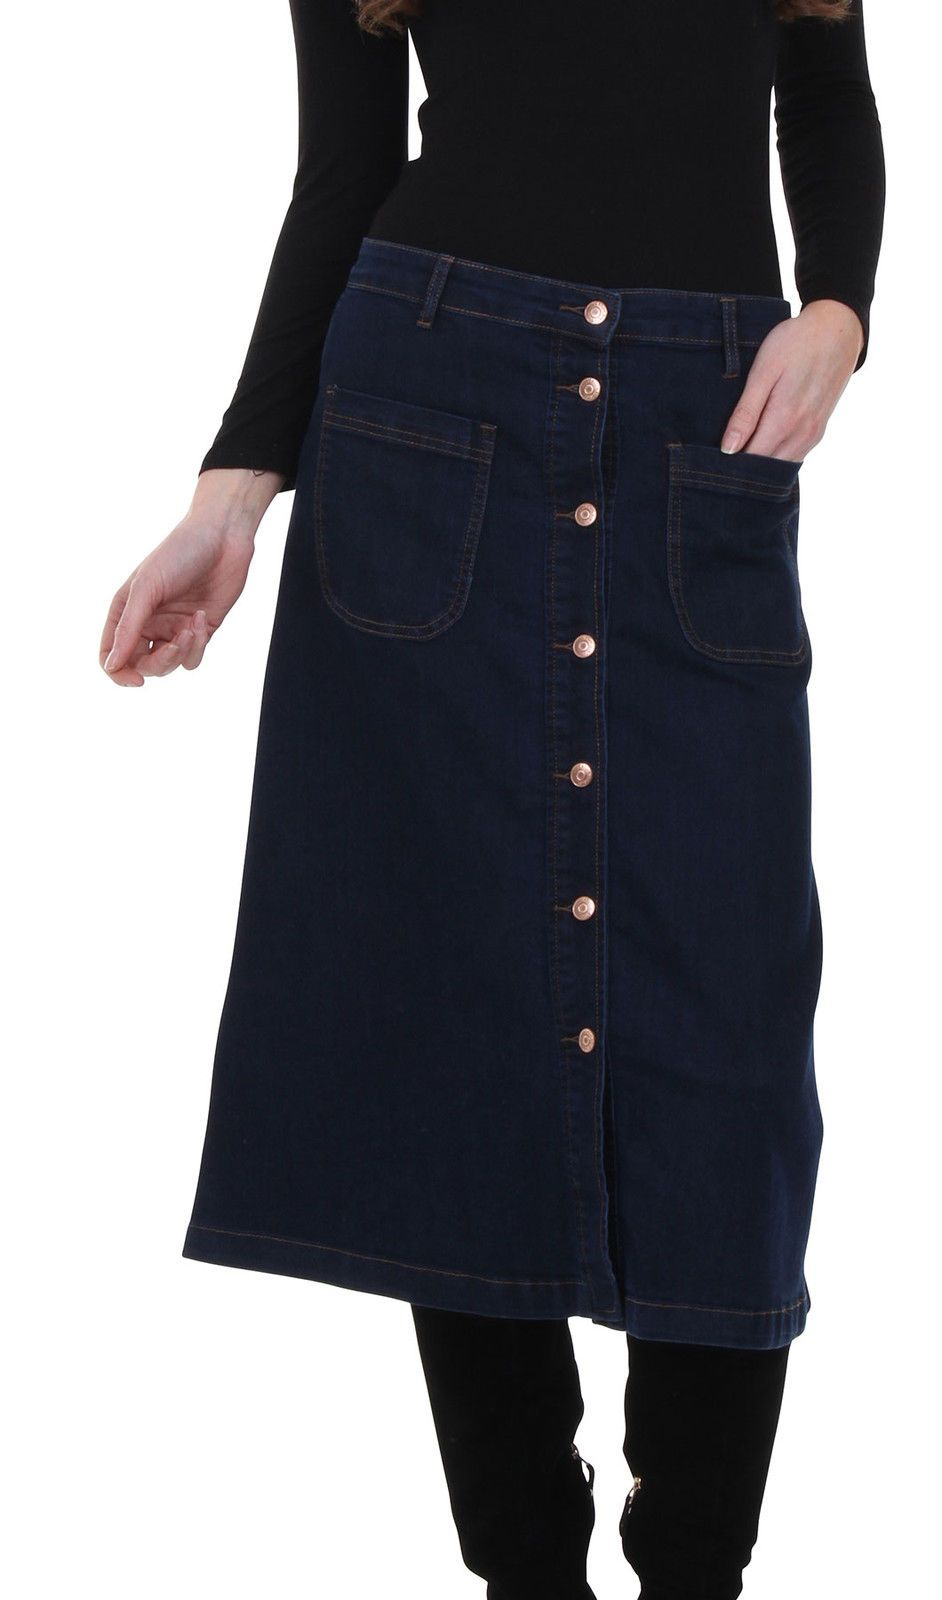 Focus on front patch pockets, belt loops and buttons on 'christine' denim skirt from Dungarees Online.